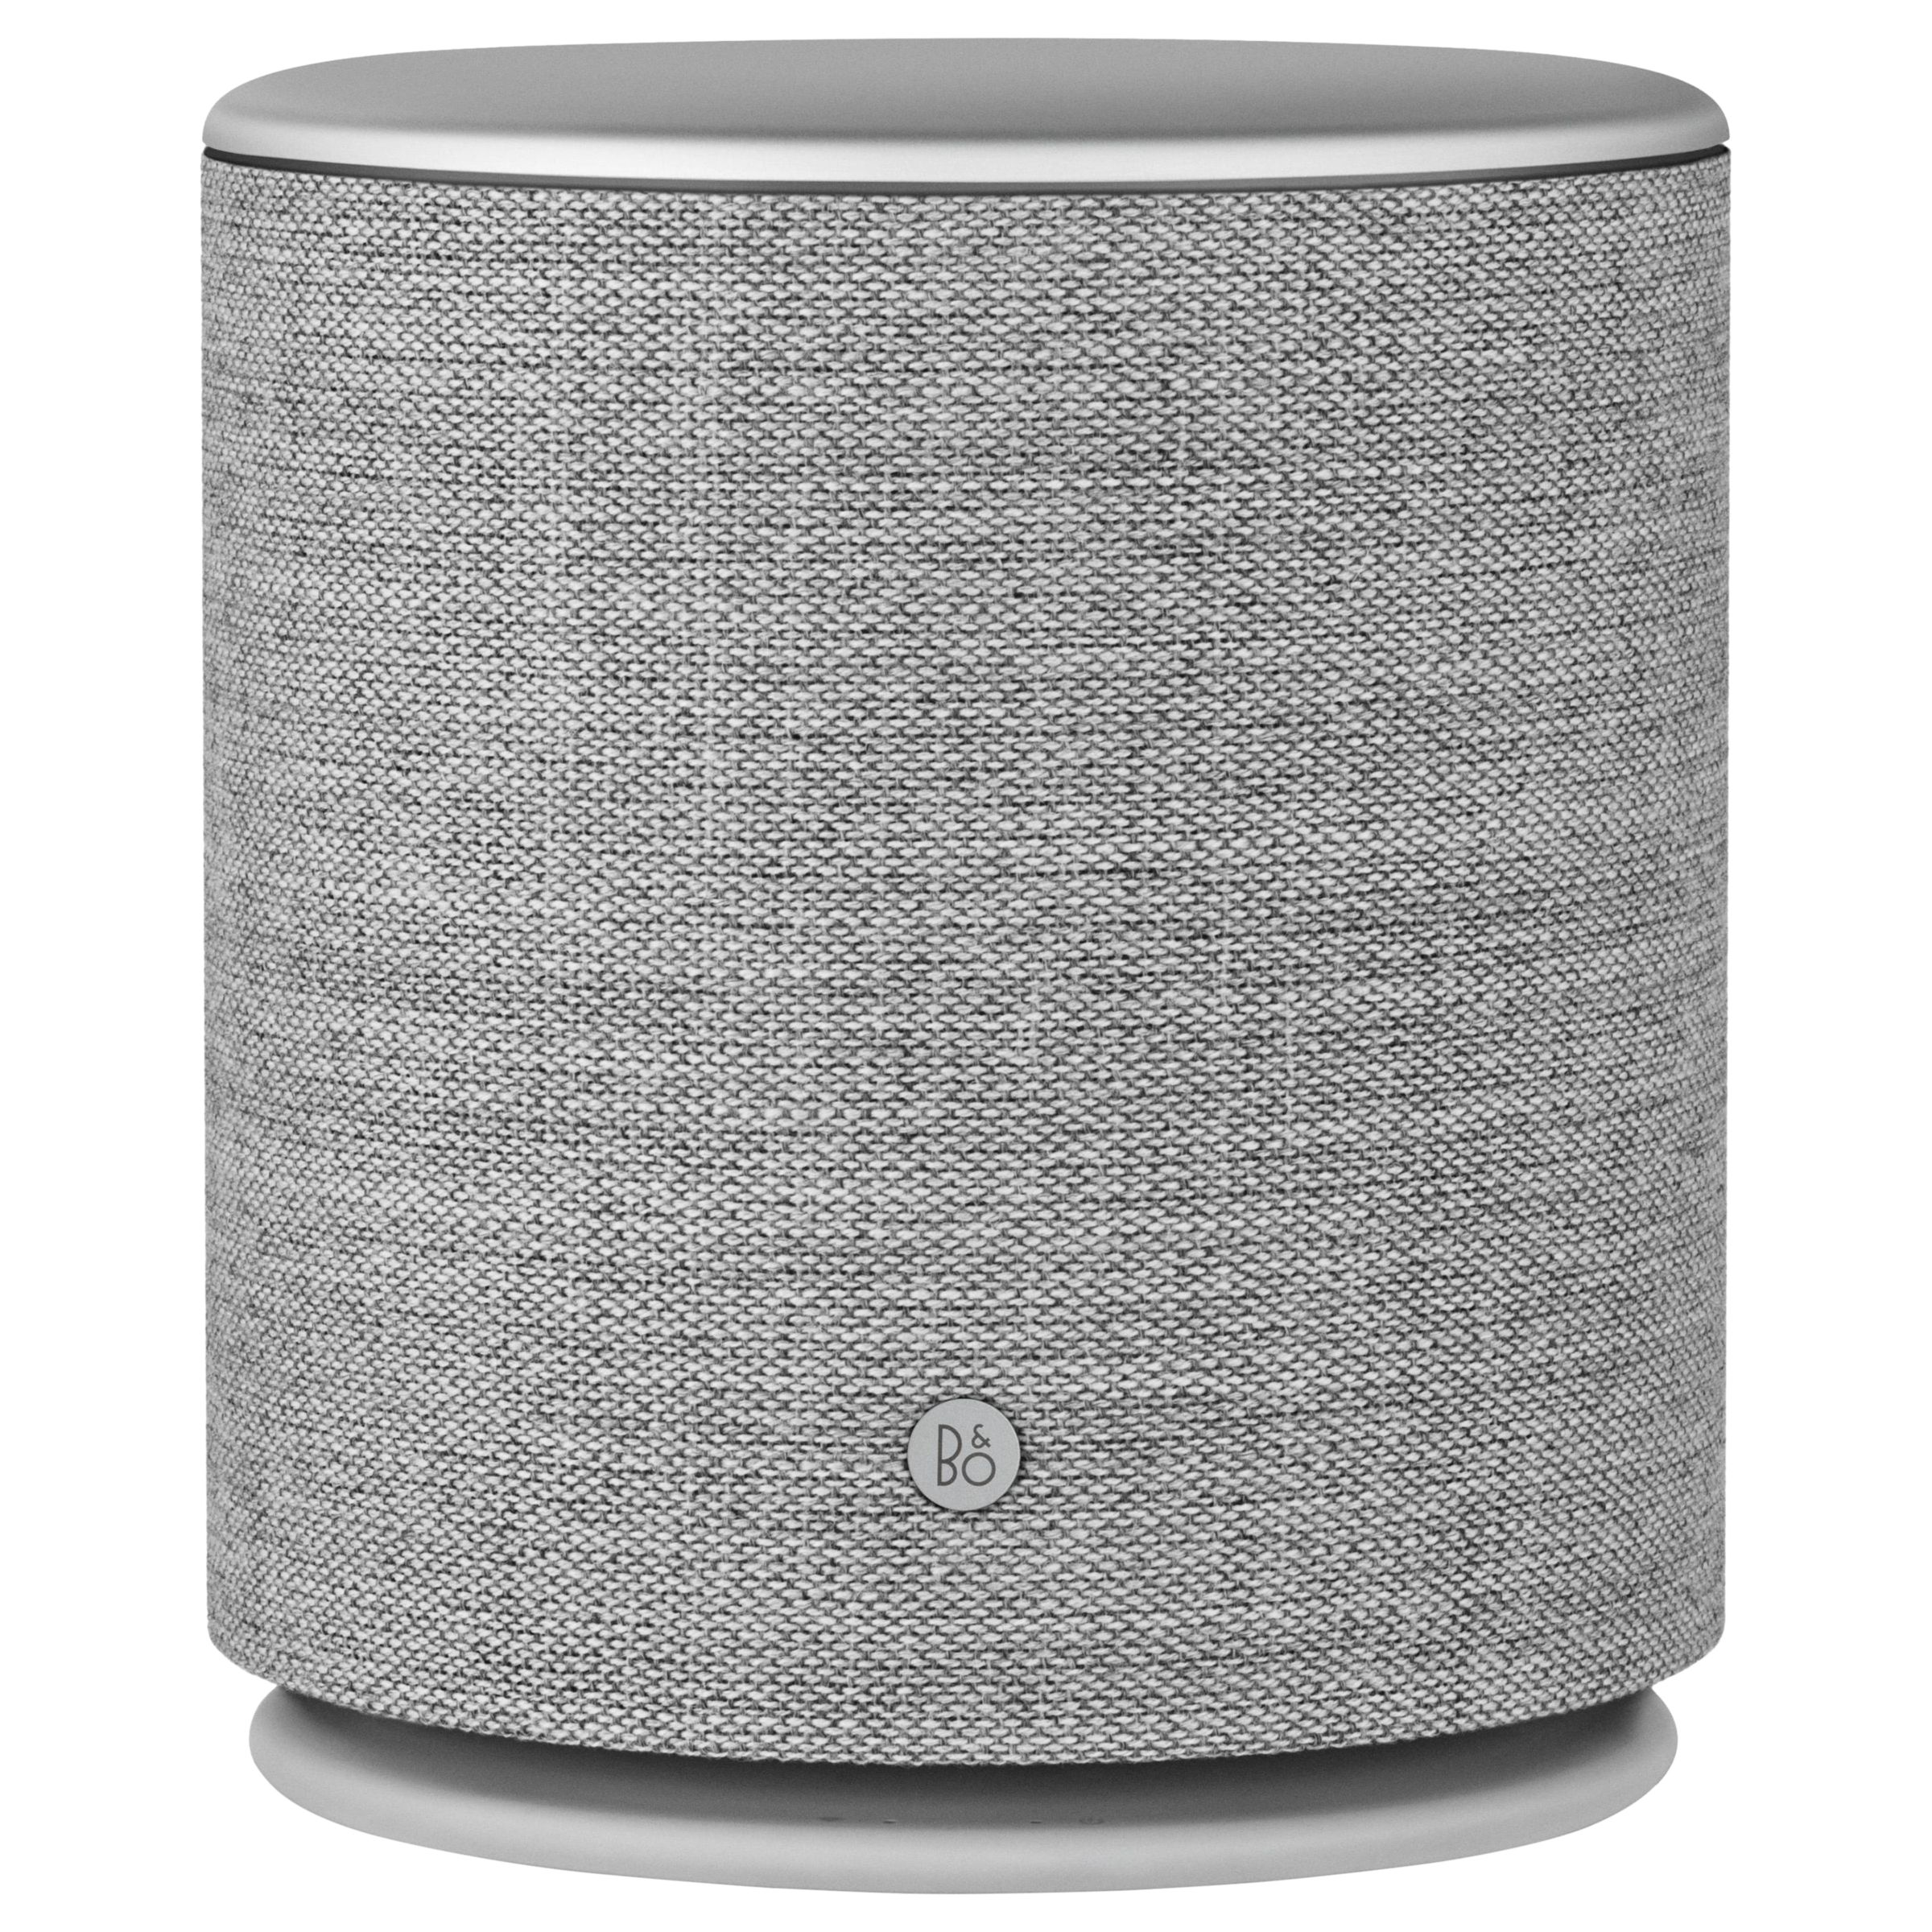 Bang & Olufsen B&O PLAY by Bang & Olufsen BeoPlay M5 Wireless Multiroom & Bluetooth Speaker with Google Chromecast & Apple AirPlay